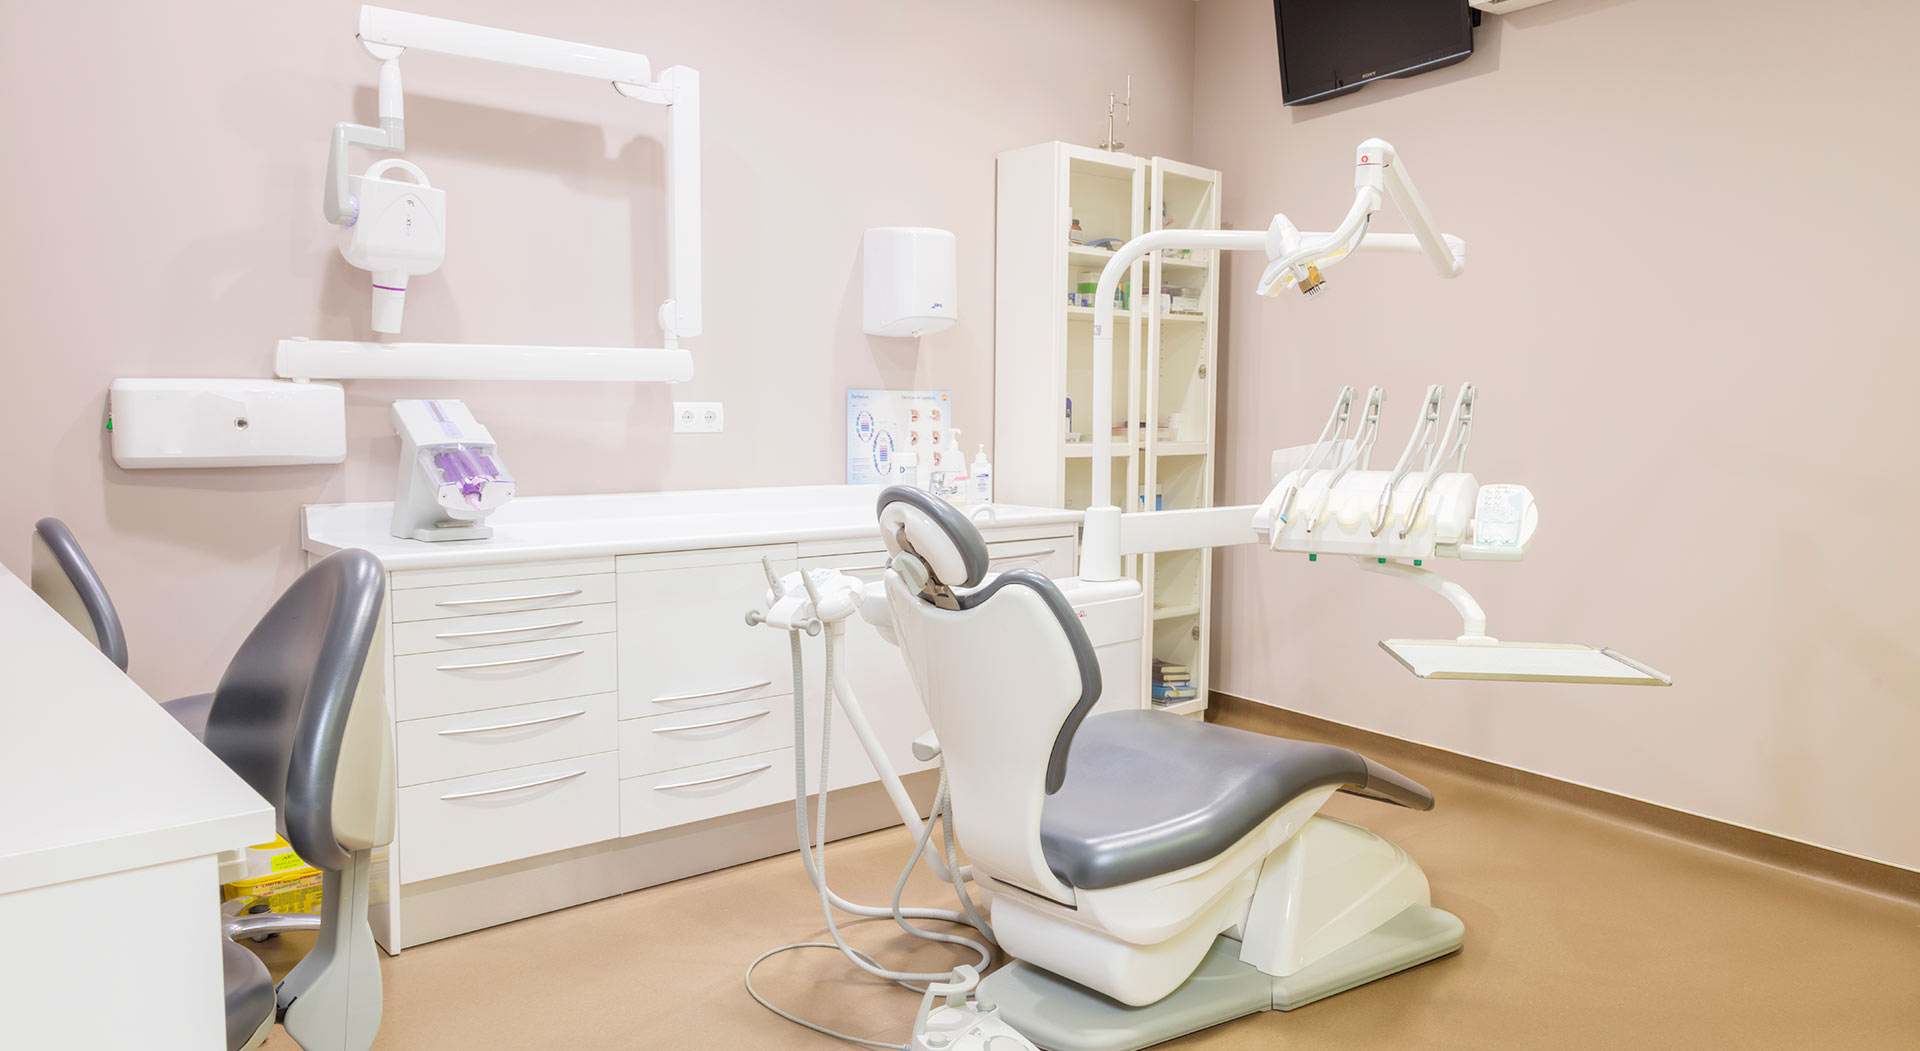 clínica dental Mieres